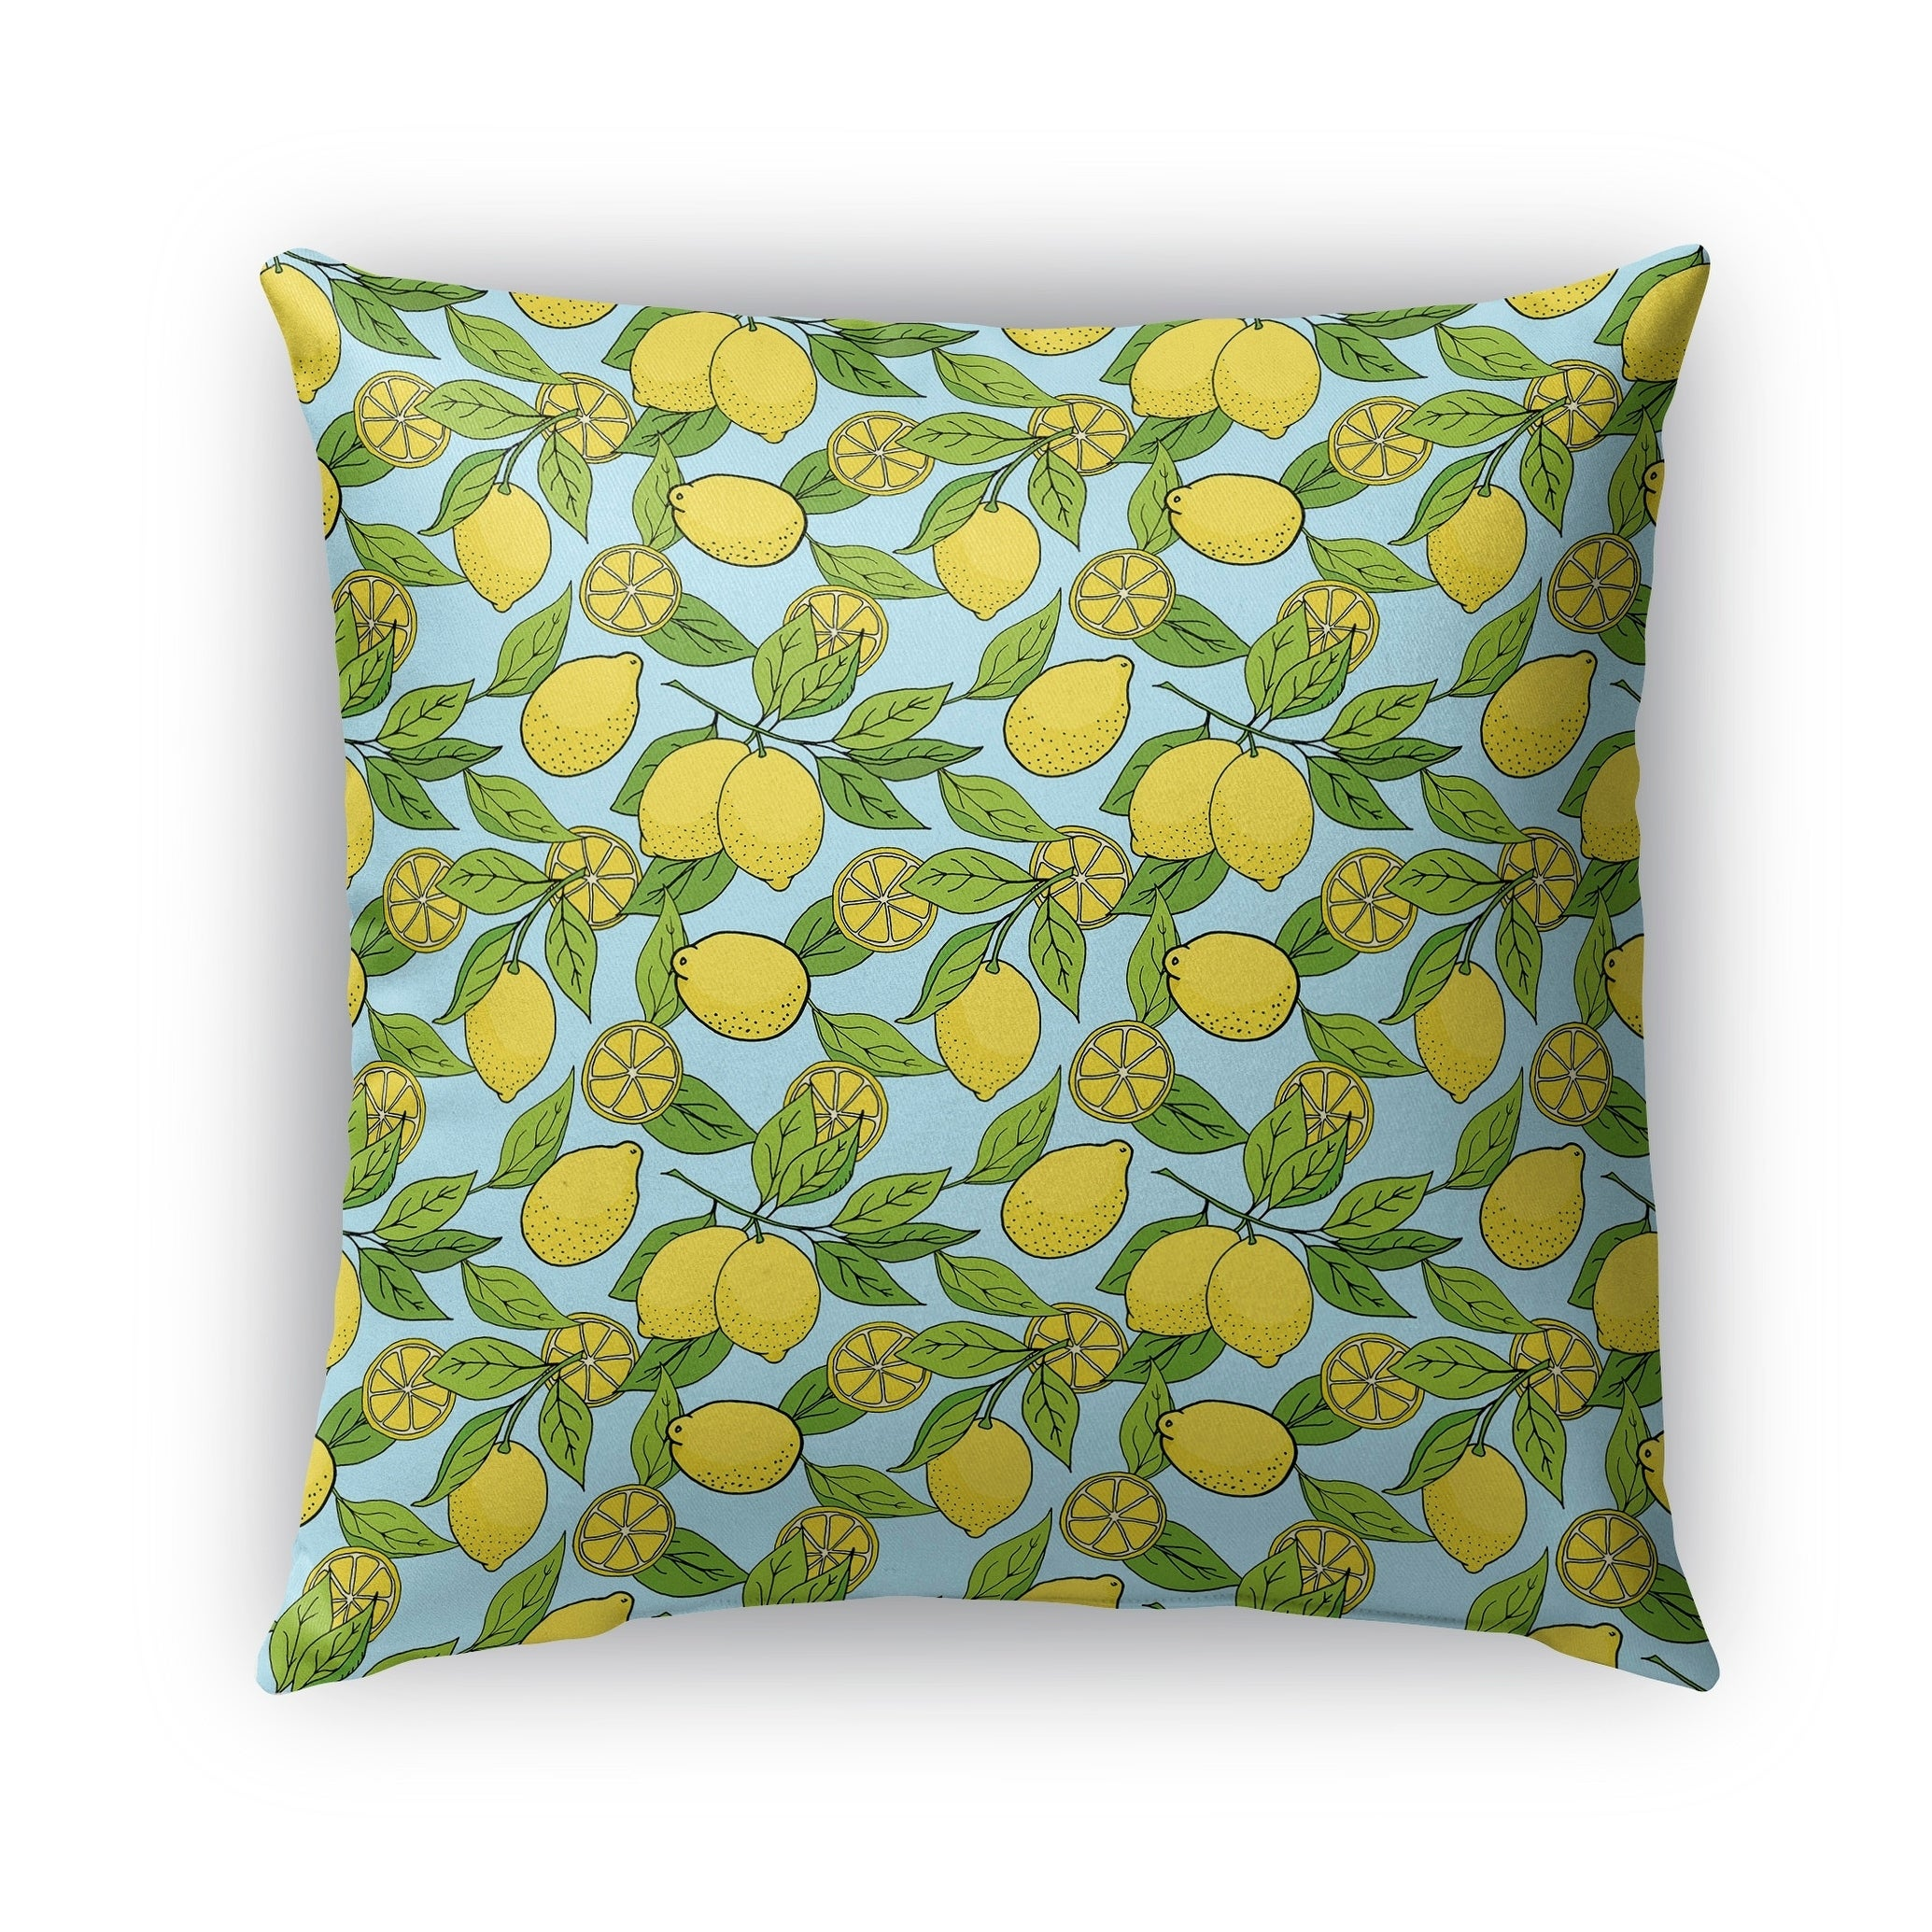 Shop Kavka Designs Blue; Yellow; Green Lemons Outdoor Pillow With Insert    Free Shipping On Orders Over $45   Overstock   16963448